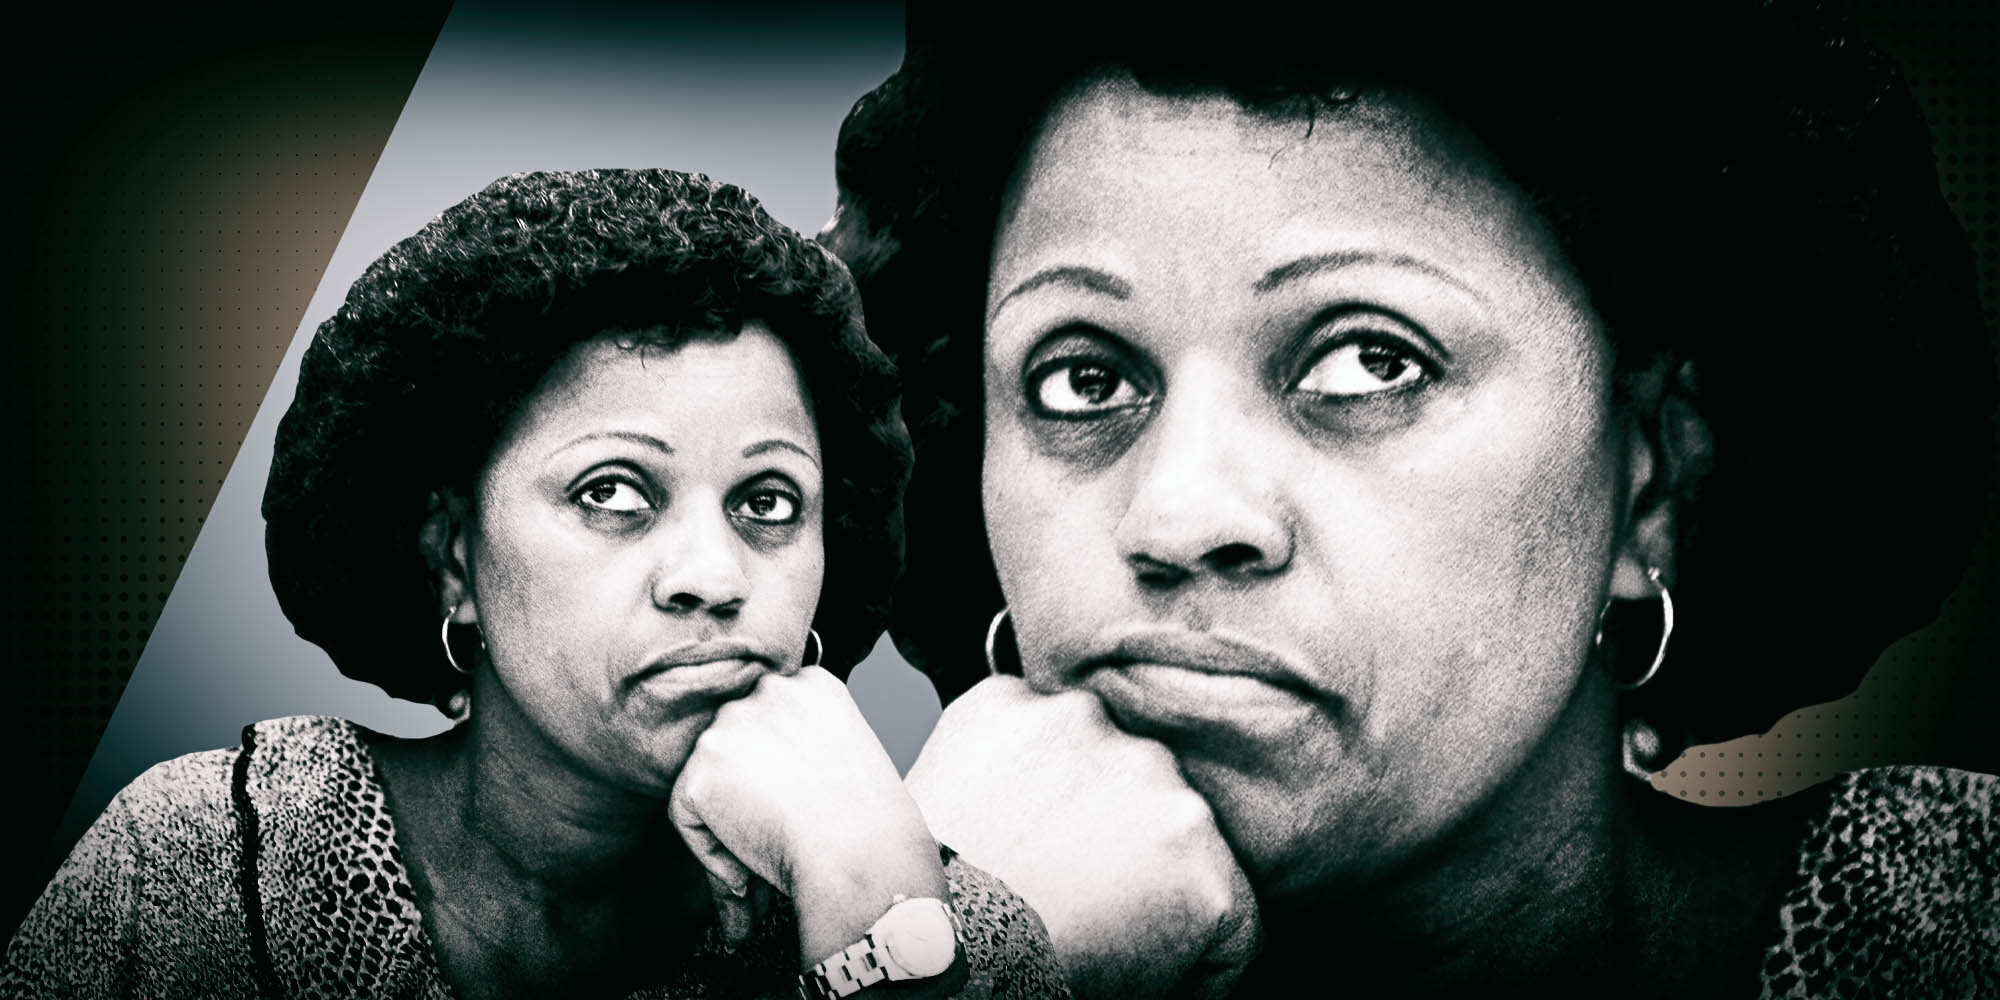 Delinquency hearing: Dudu Myeni had a 'complete disregard for public funds' - Daily Maverick